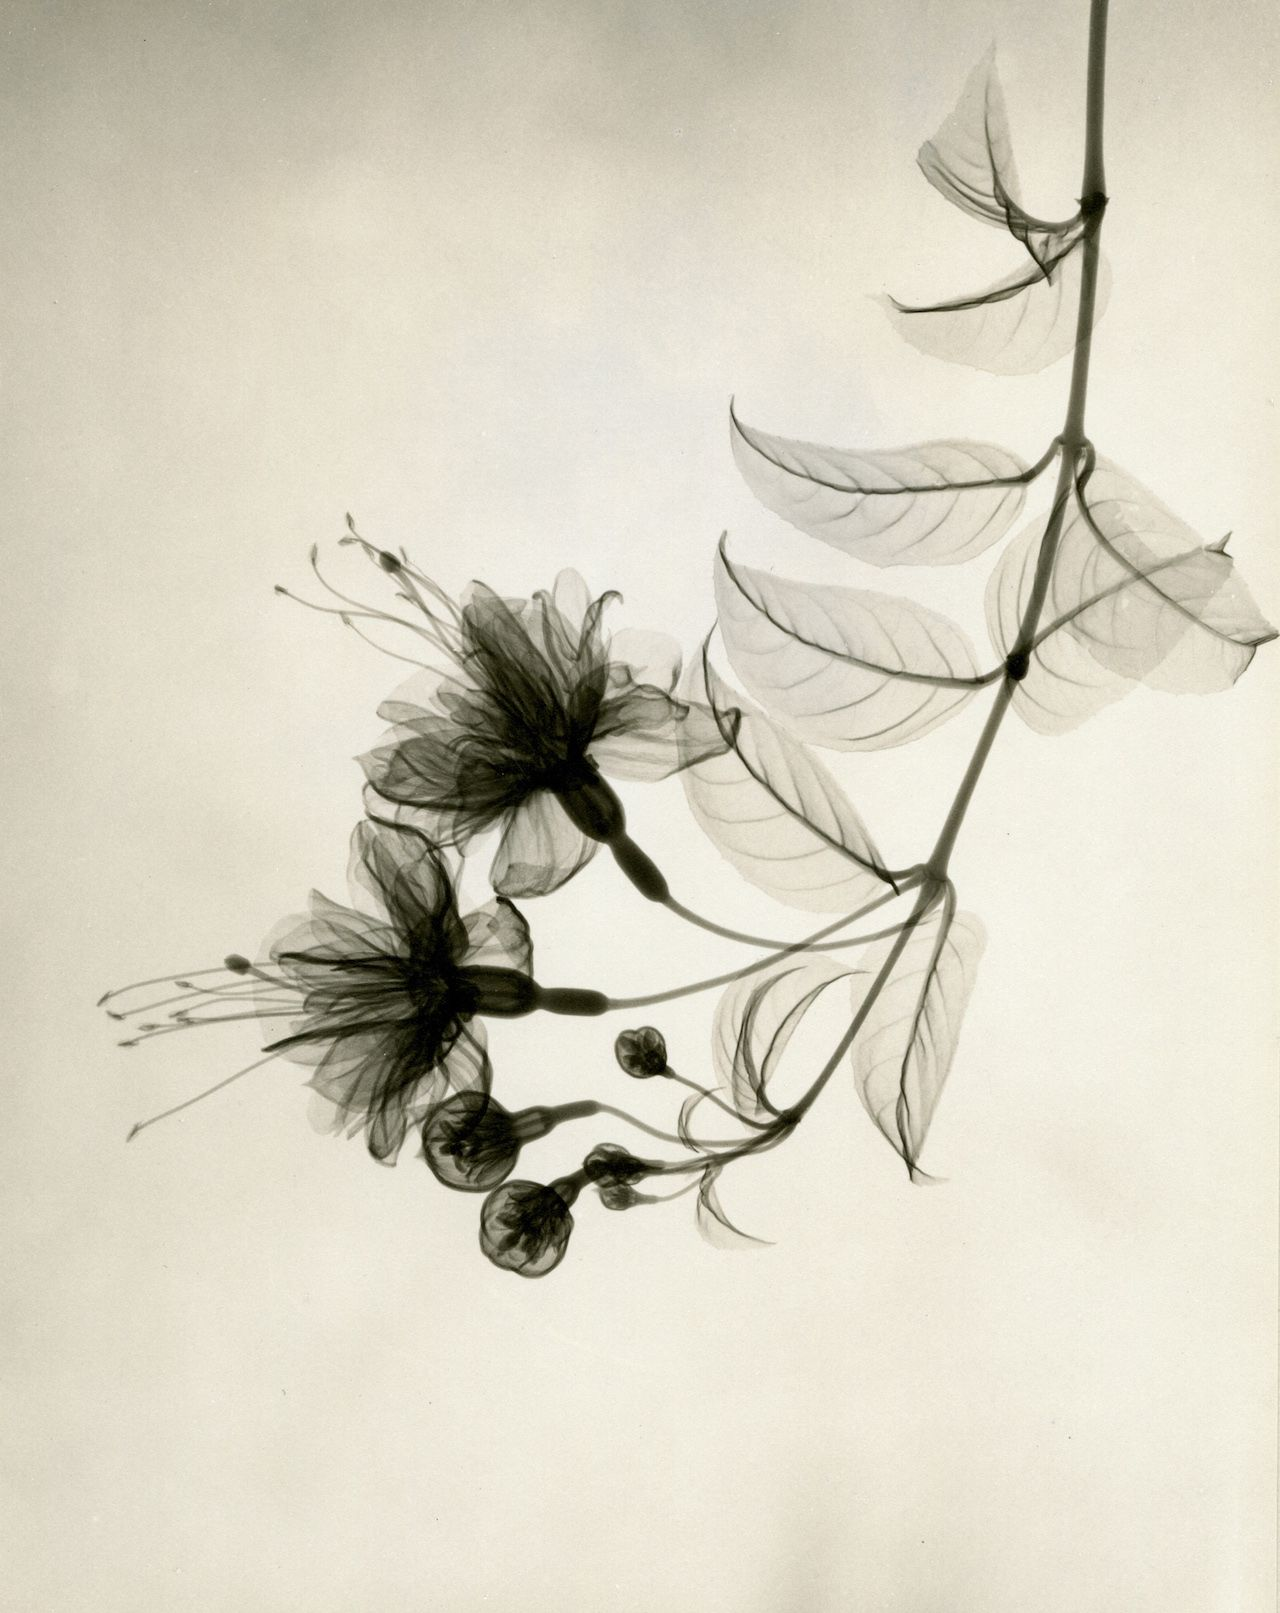 A Radiologist\u0027s X,Ray Photographs of Flowers from the 1930s